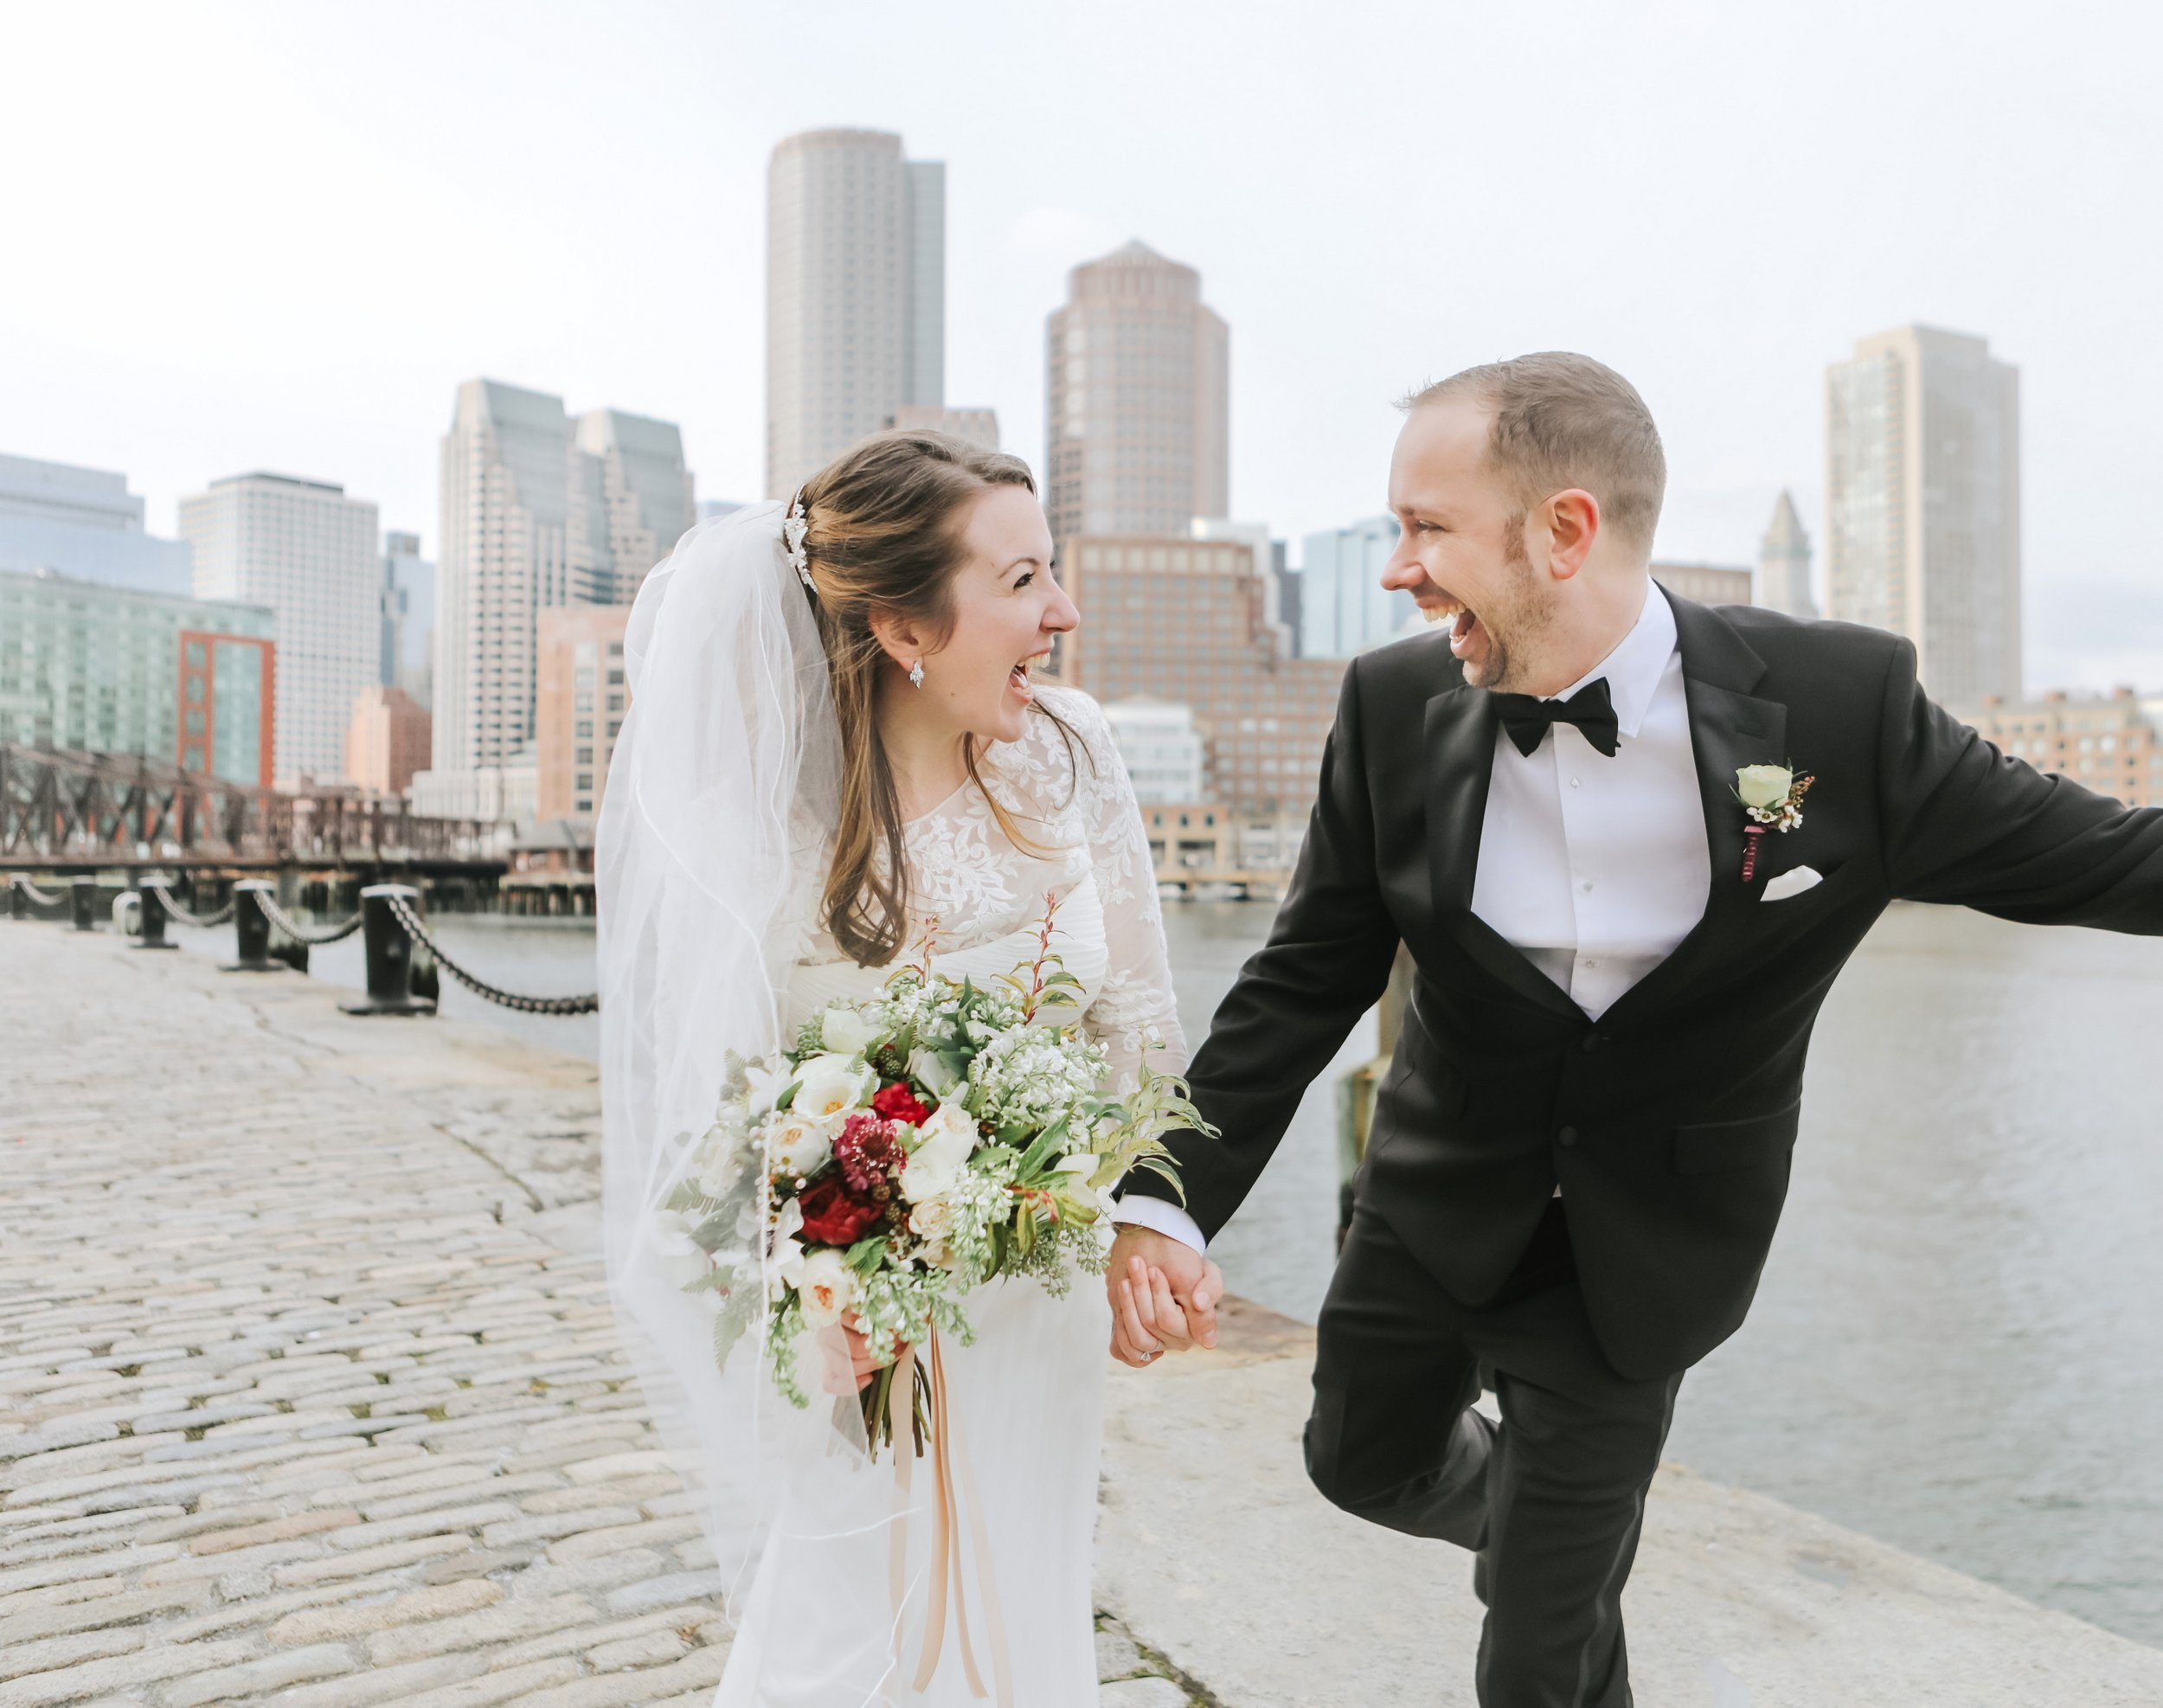 Seaport-Boston-City-Hall-Wedding-Elopement-Lena-Mirisola-1.JPG